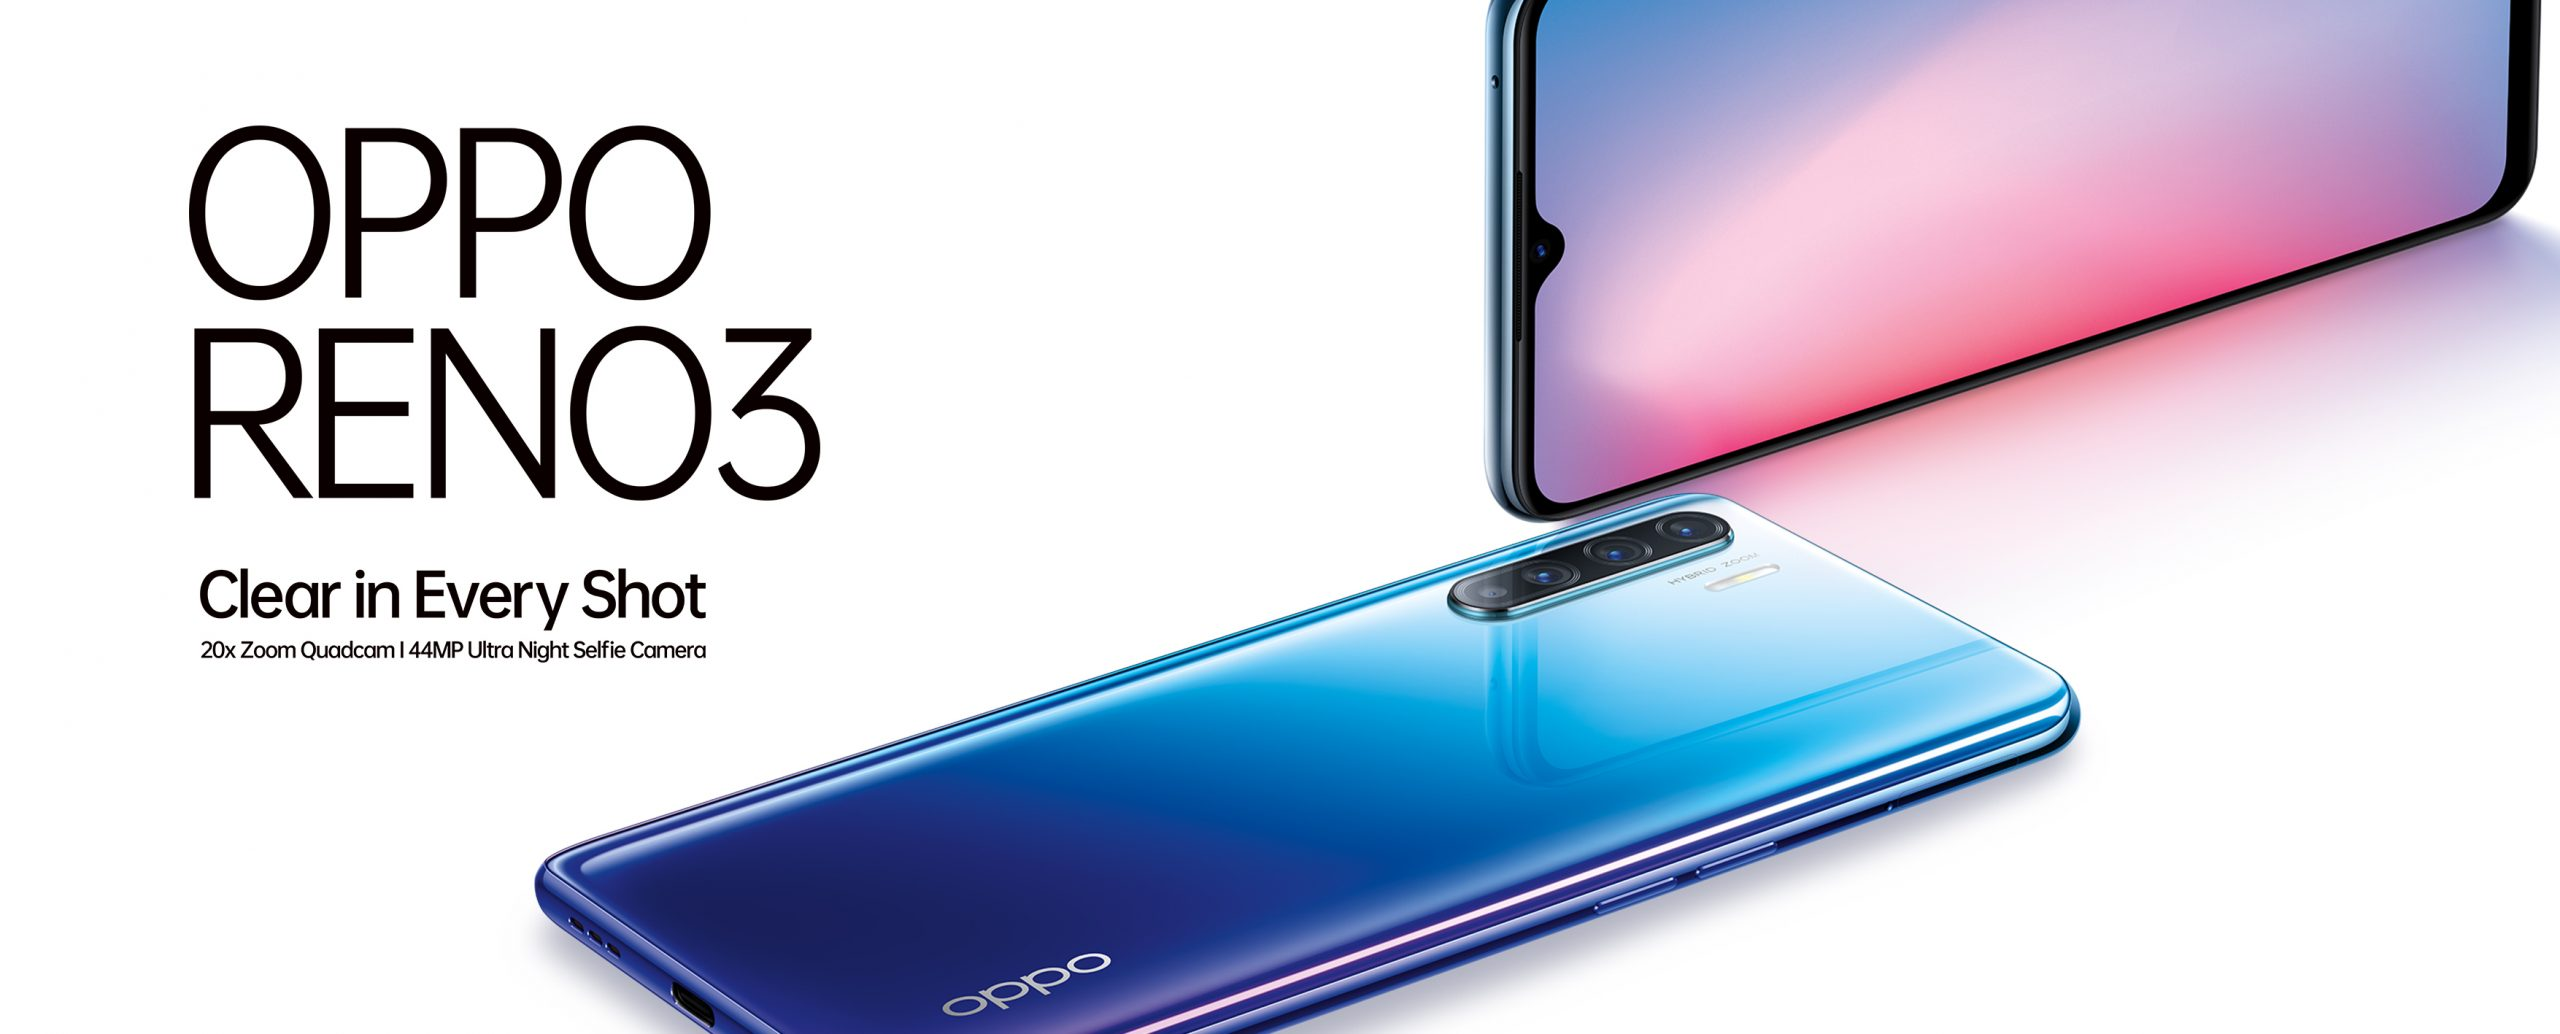 The Newly Launched OPPO Reno3 and Reno3 Pro Stands out in All Lighting Conditions, Delivering Clear Photos in Every Shot